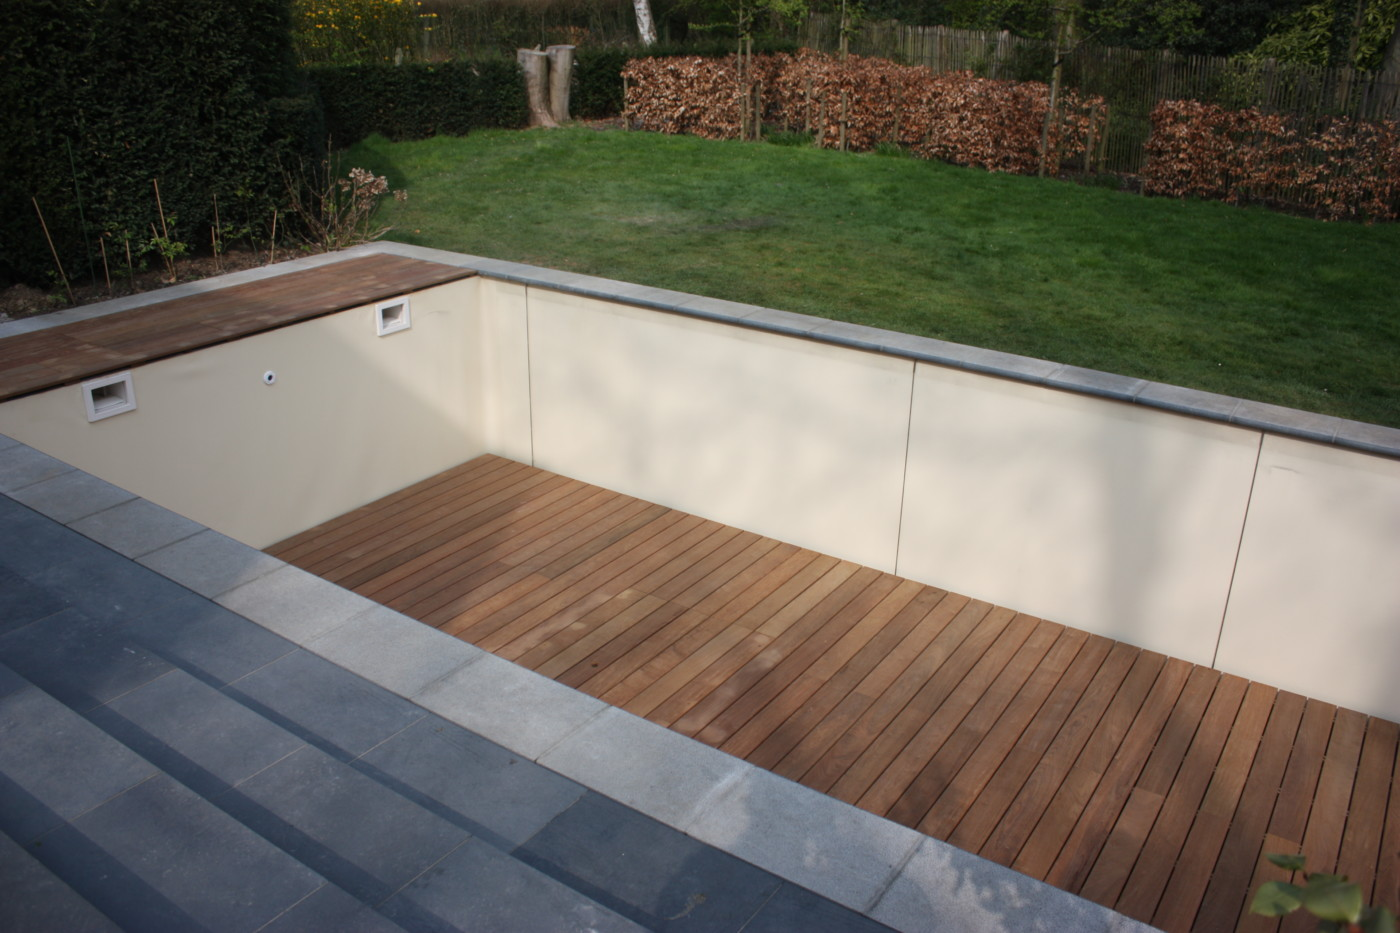 Terrasse en bois sur fond mobile de piscine mt design for Piscine fond mobile cout